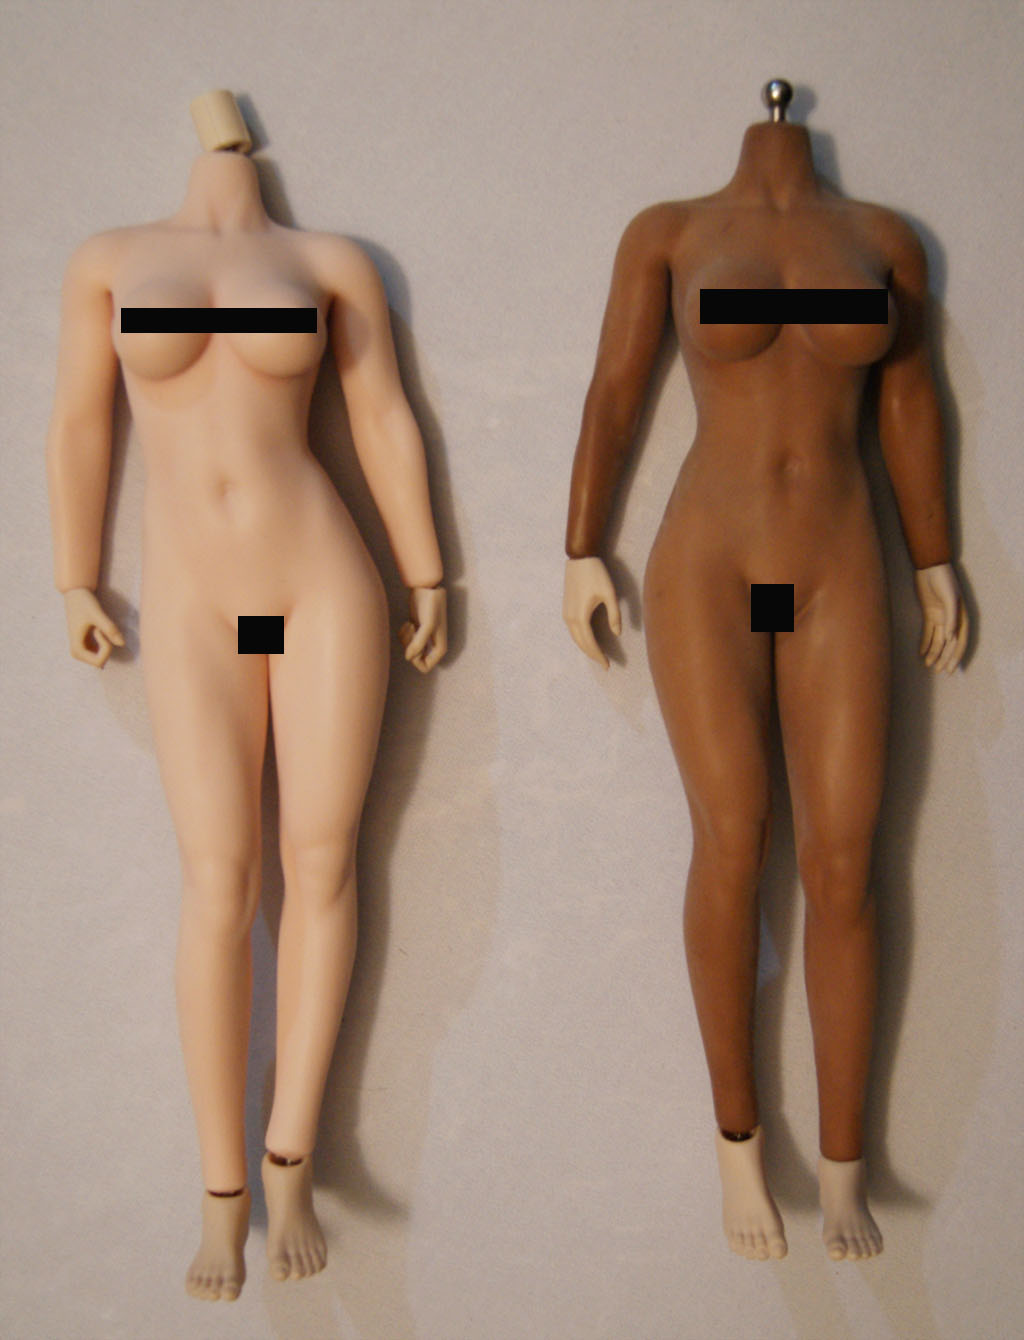 Dyeing Phicen figures with Rit Dye (NSFW) Bodies11